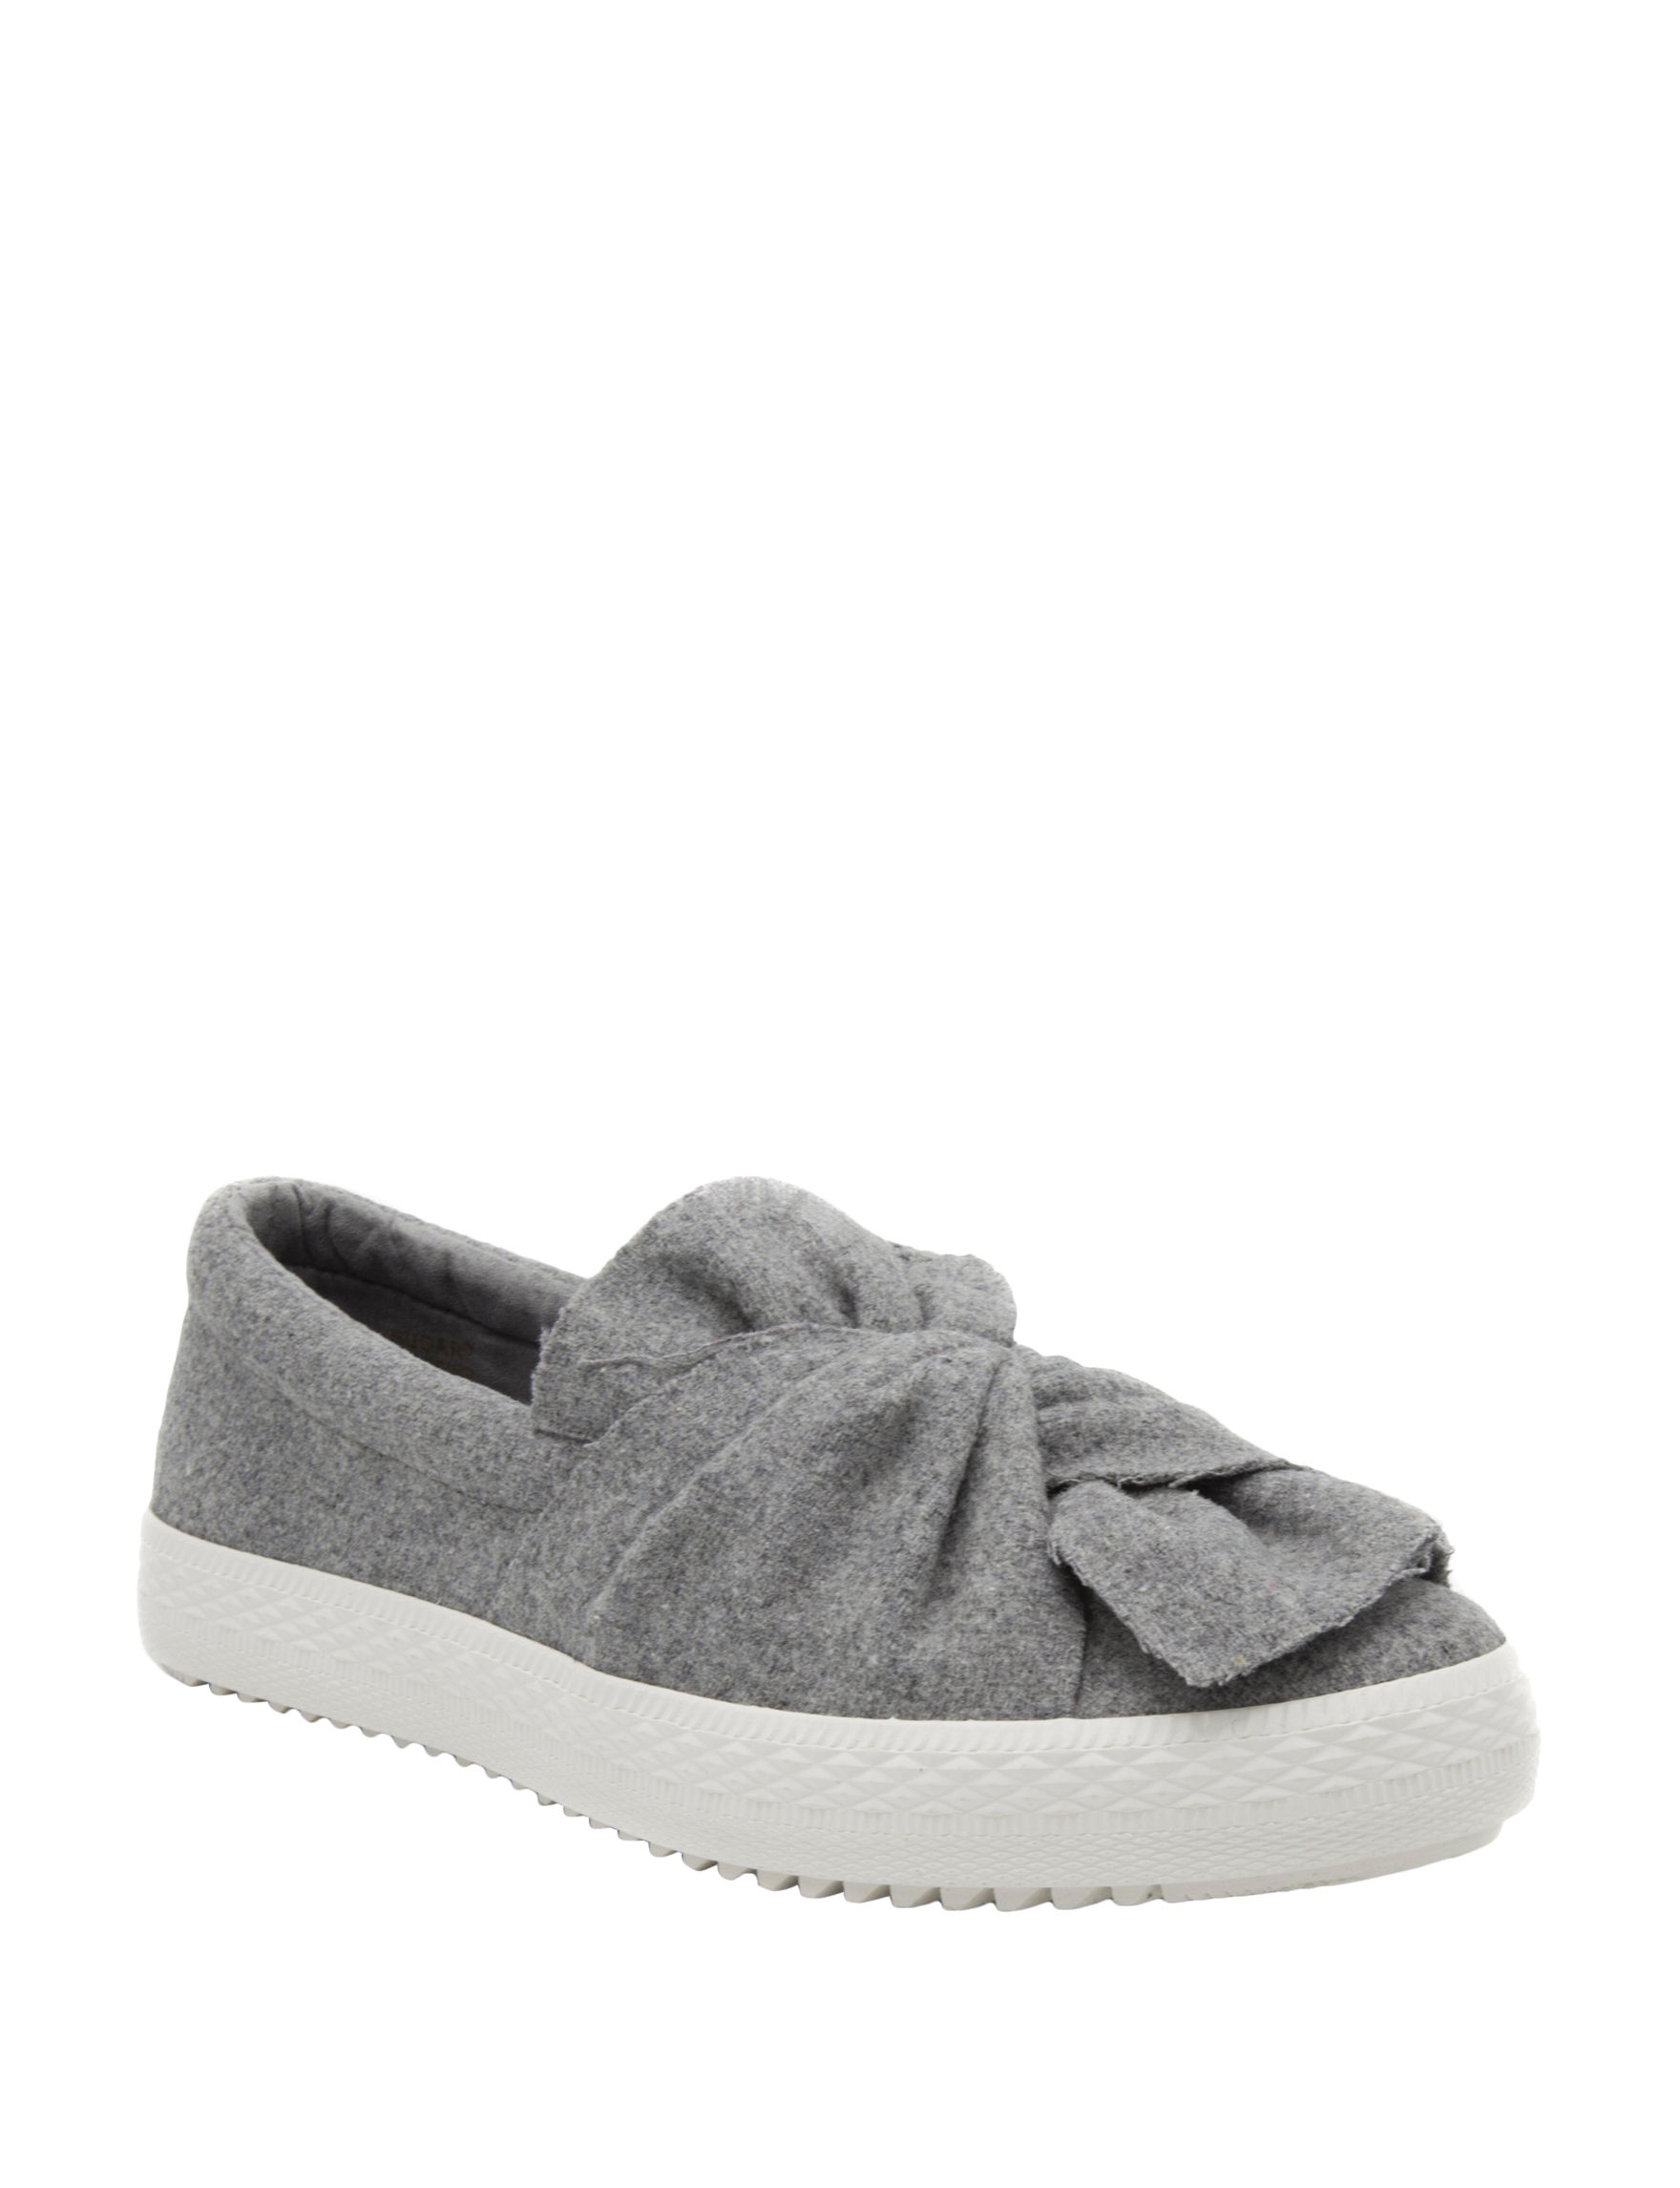 Sugar Grey Slipper Shoes